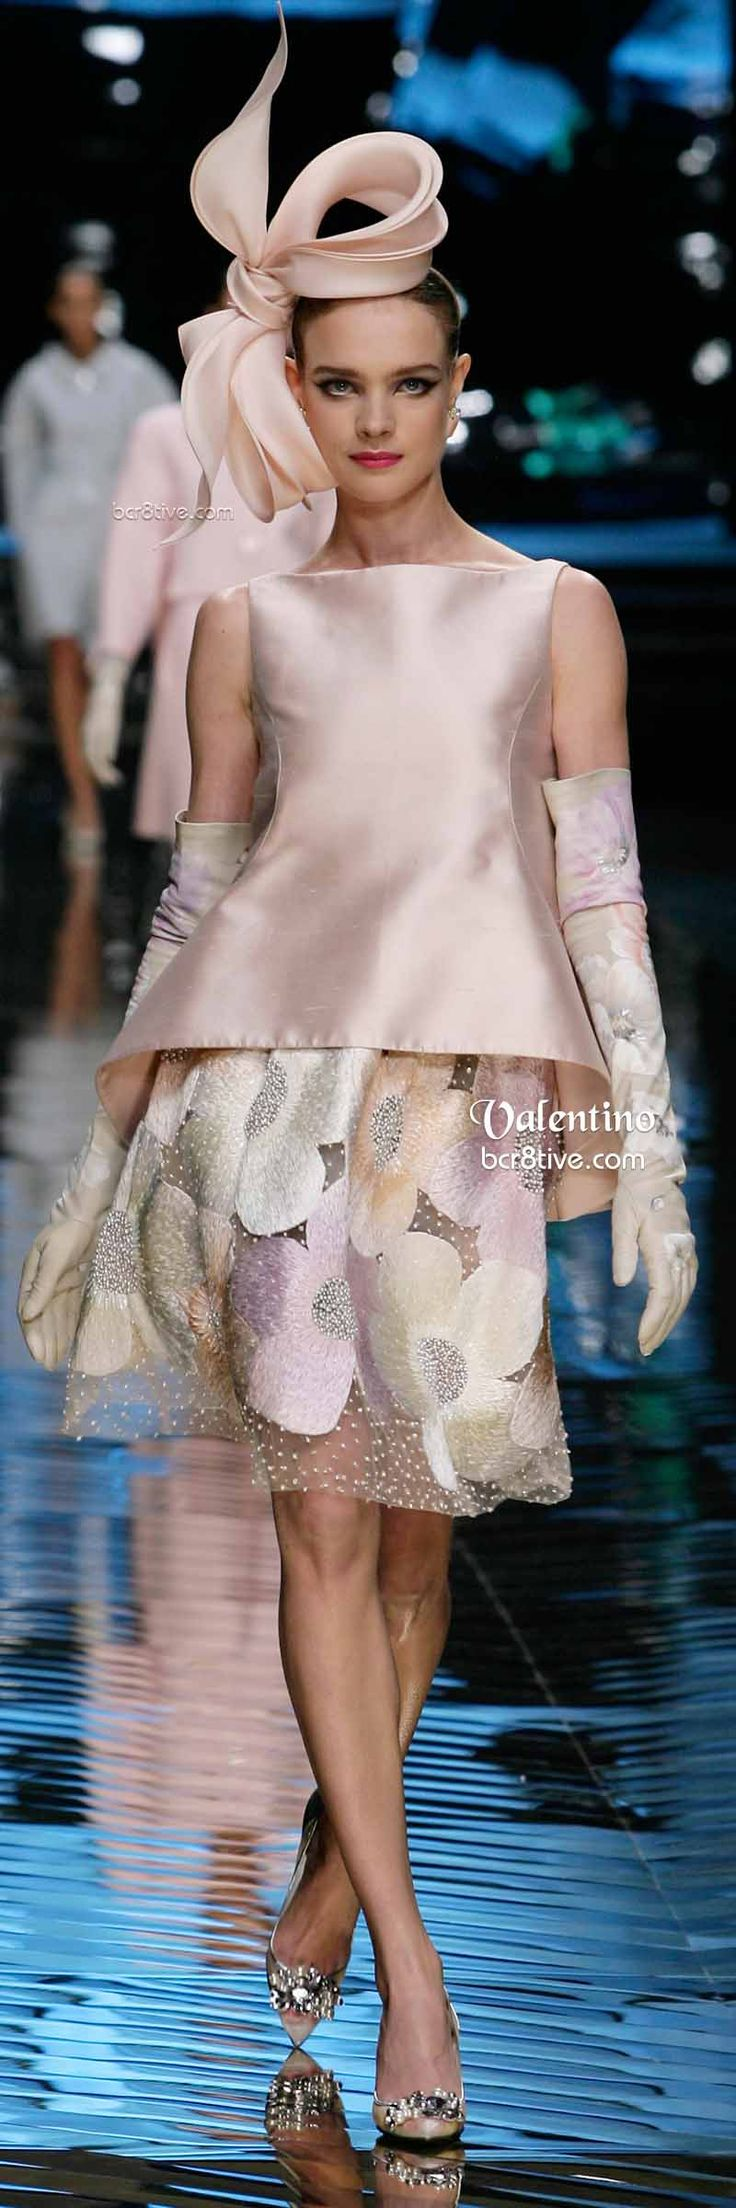 Valentino Pale Pink Skirt and Top with Bow Hat